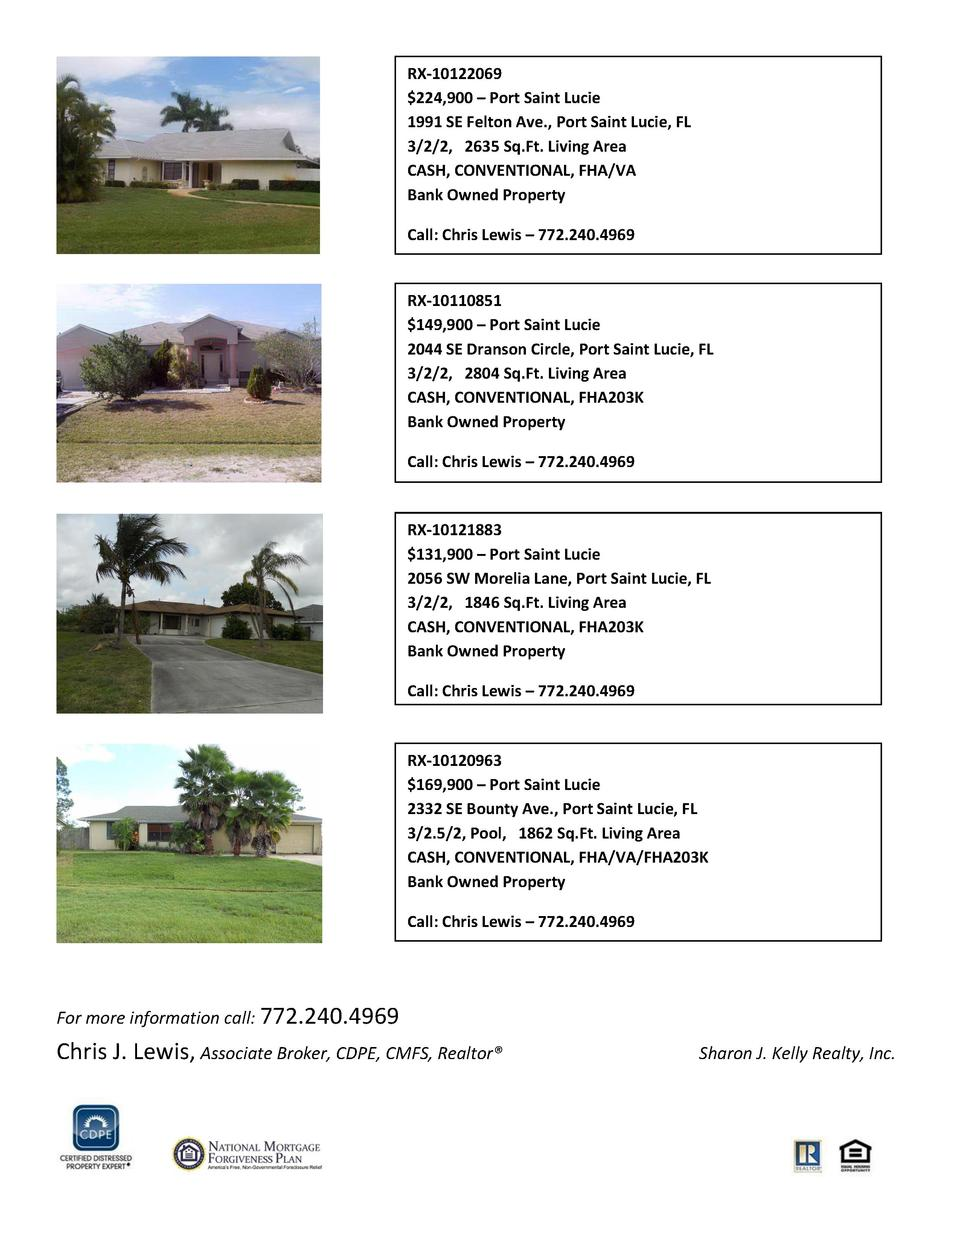 RX-10122069  224,900     Port Saint Lucie 1991 SE Felton Ave., Port Saint Lucie, FL 3 2 2, 2635 Sq.Ft. Living Area CASH, C...